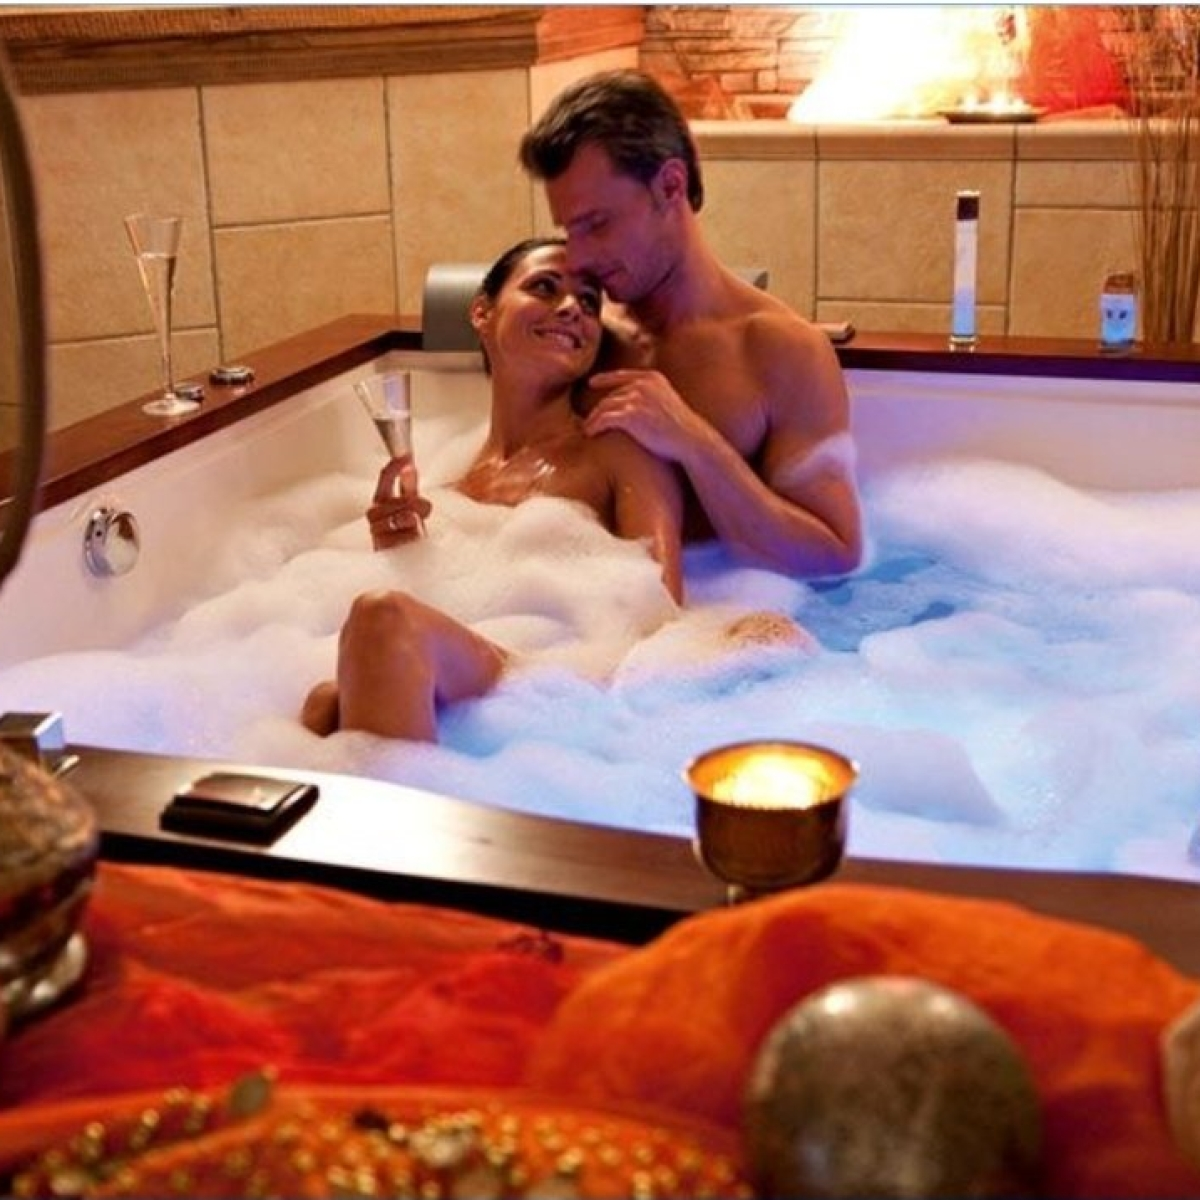 'Paani ki shortage': Netizens list reasons that stop them from enjoying romantic 'couples bath'